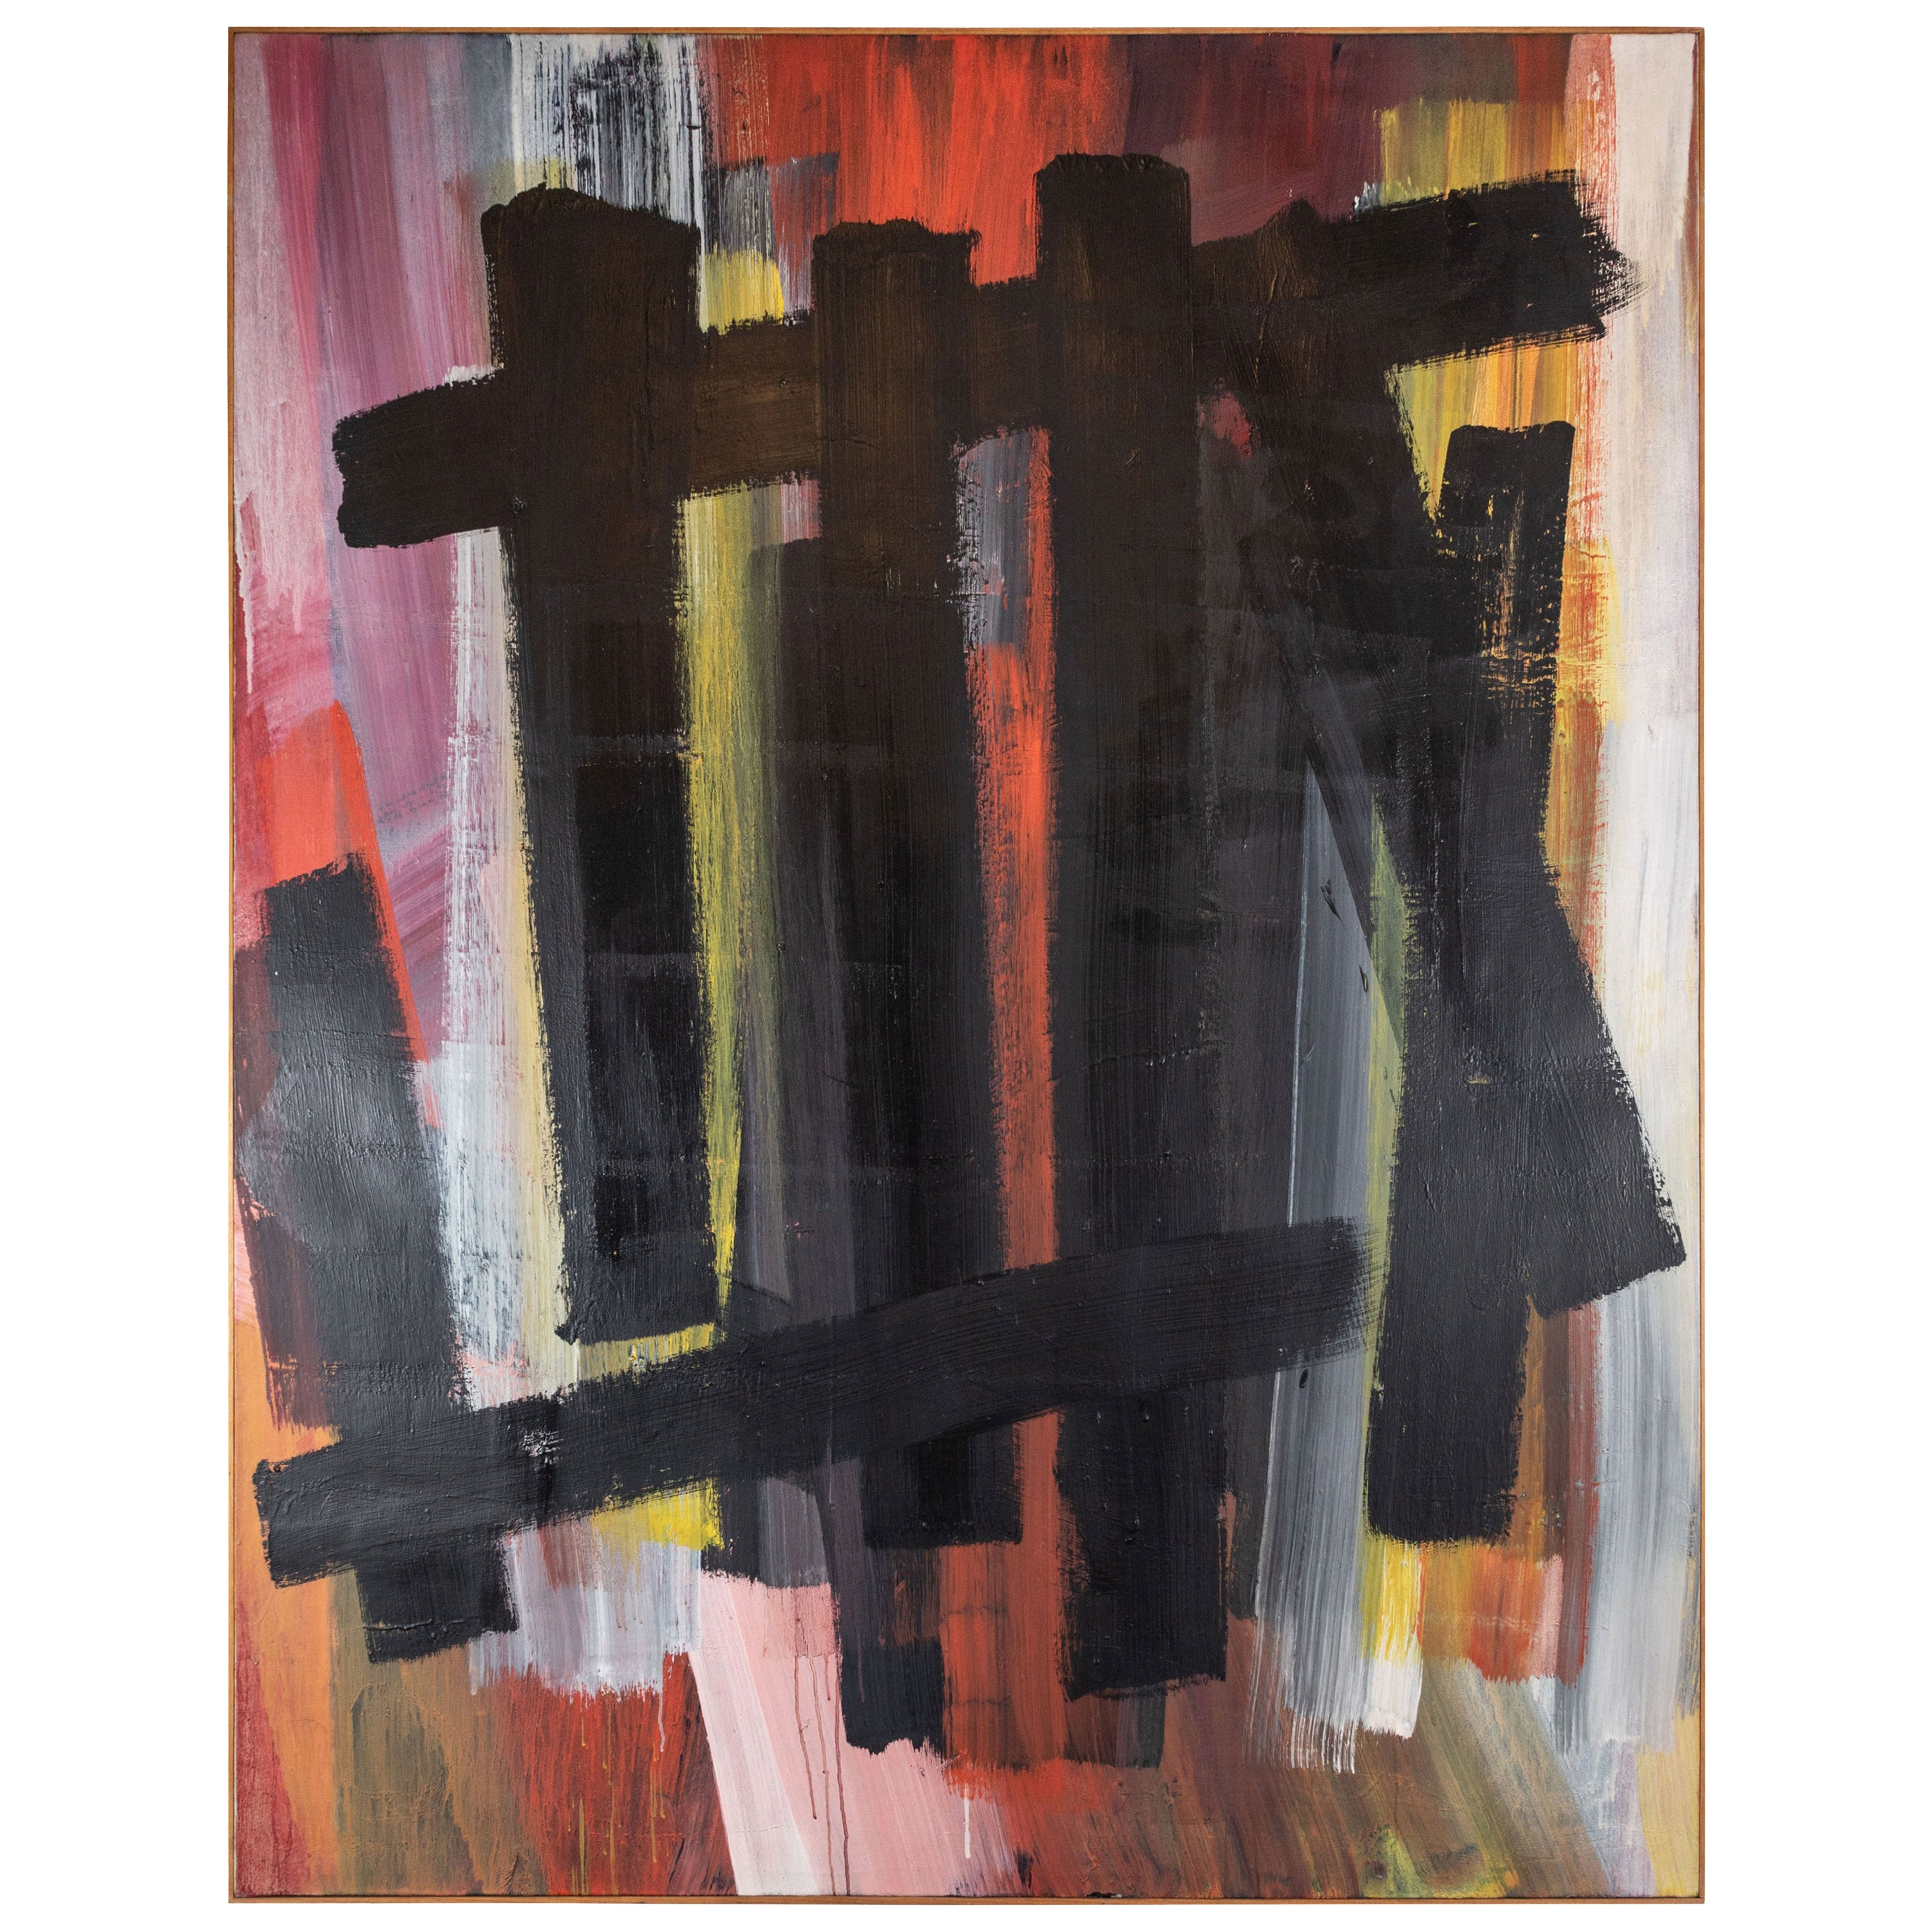 Original, Abstract, 1963 Oil Painting